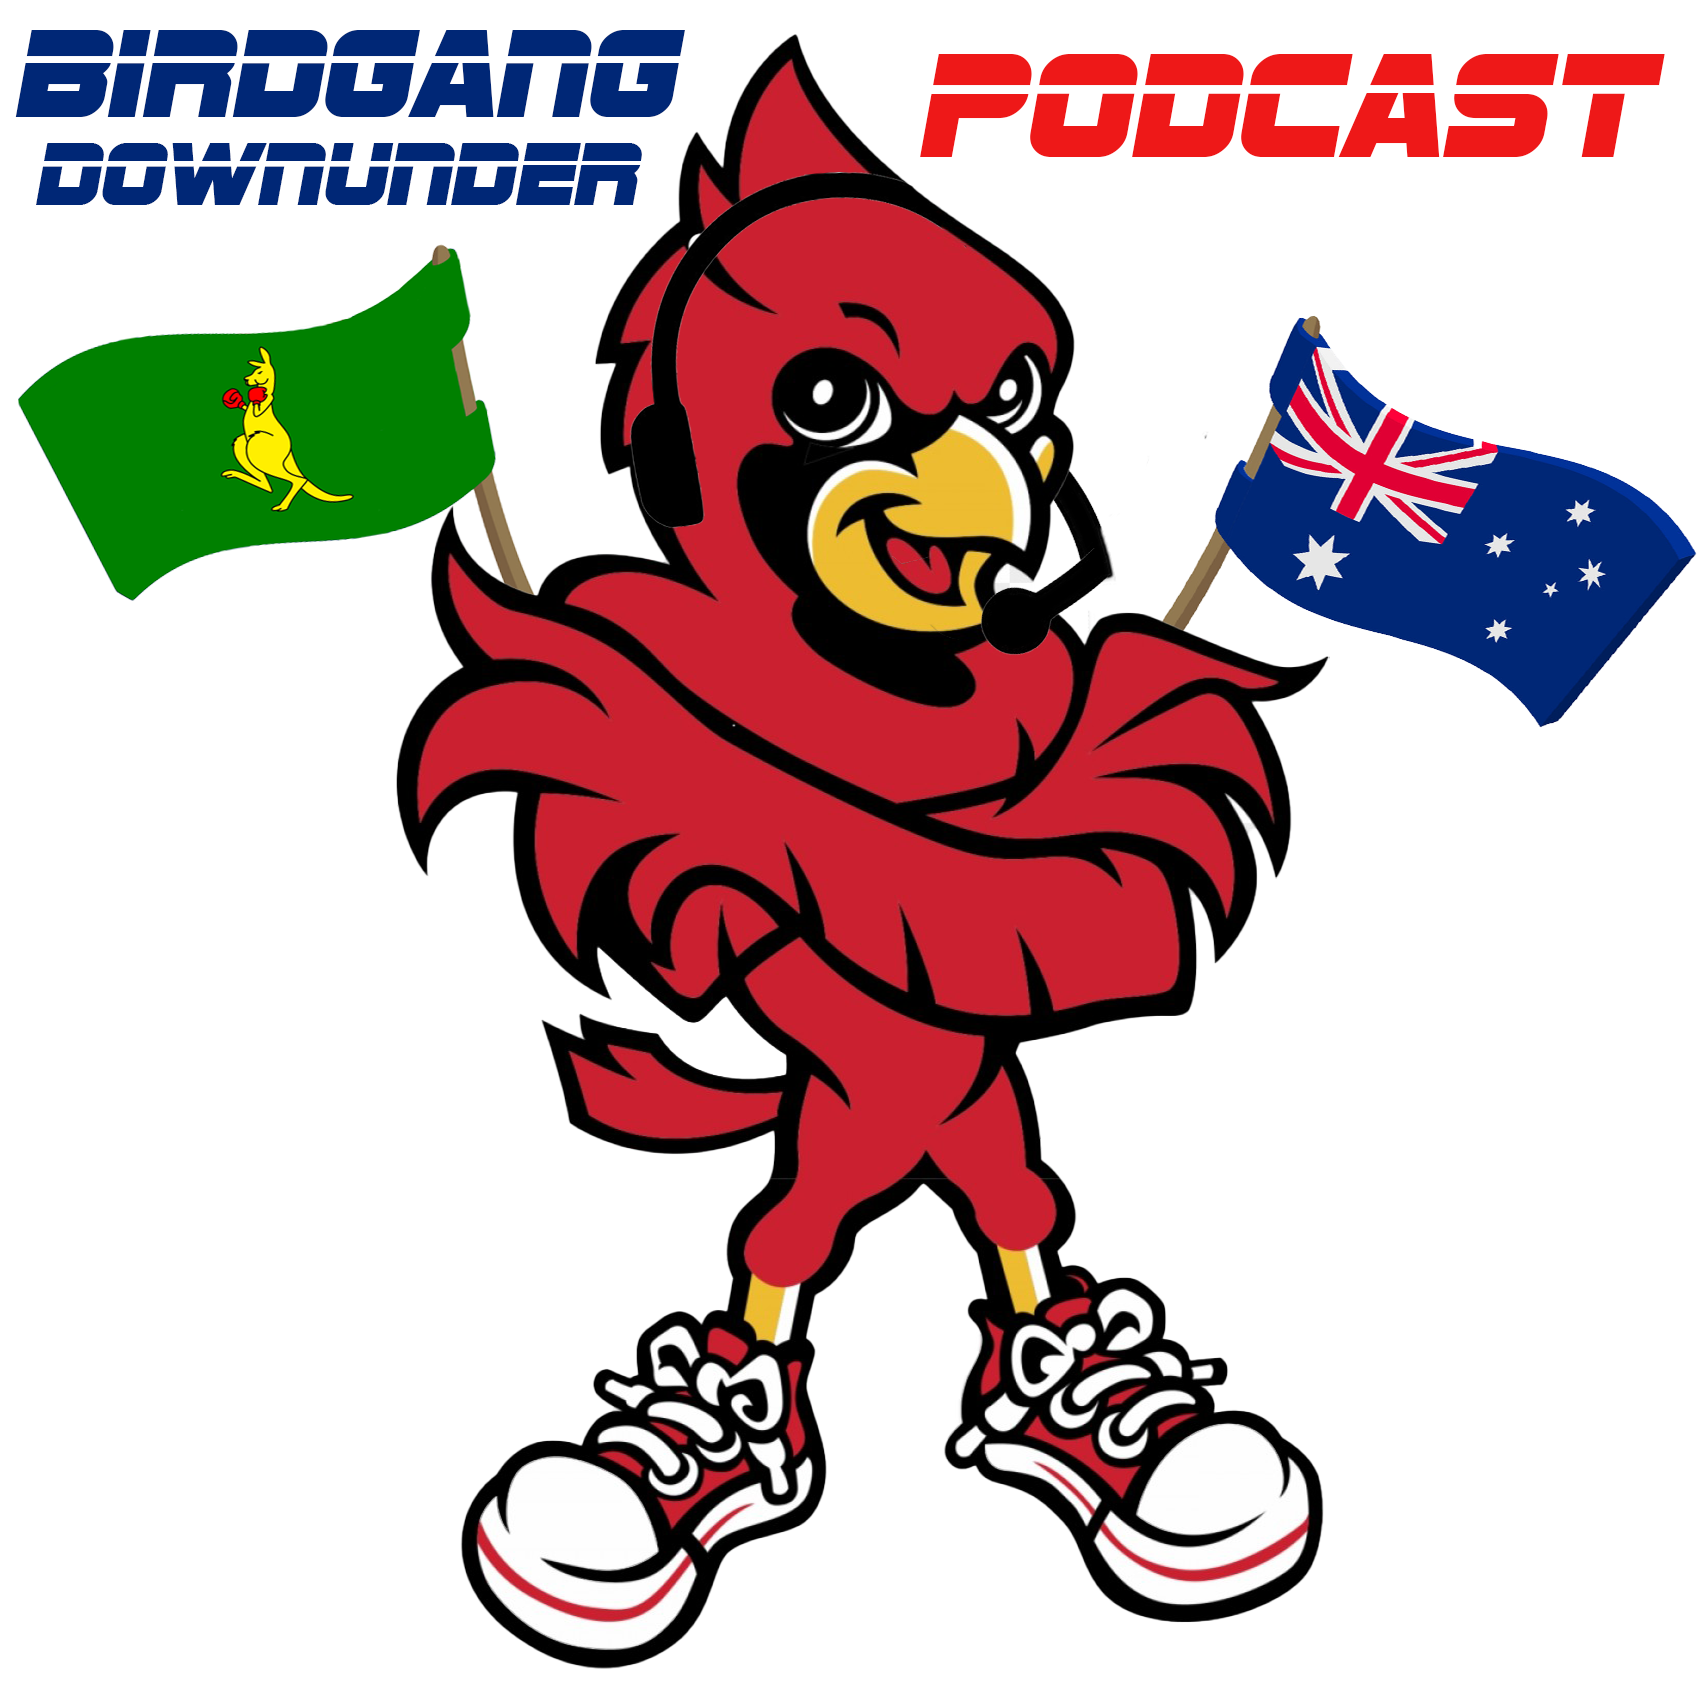 Birdgang Downunder Podcast